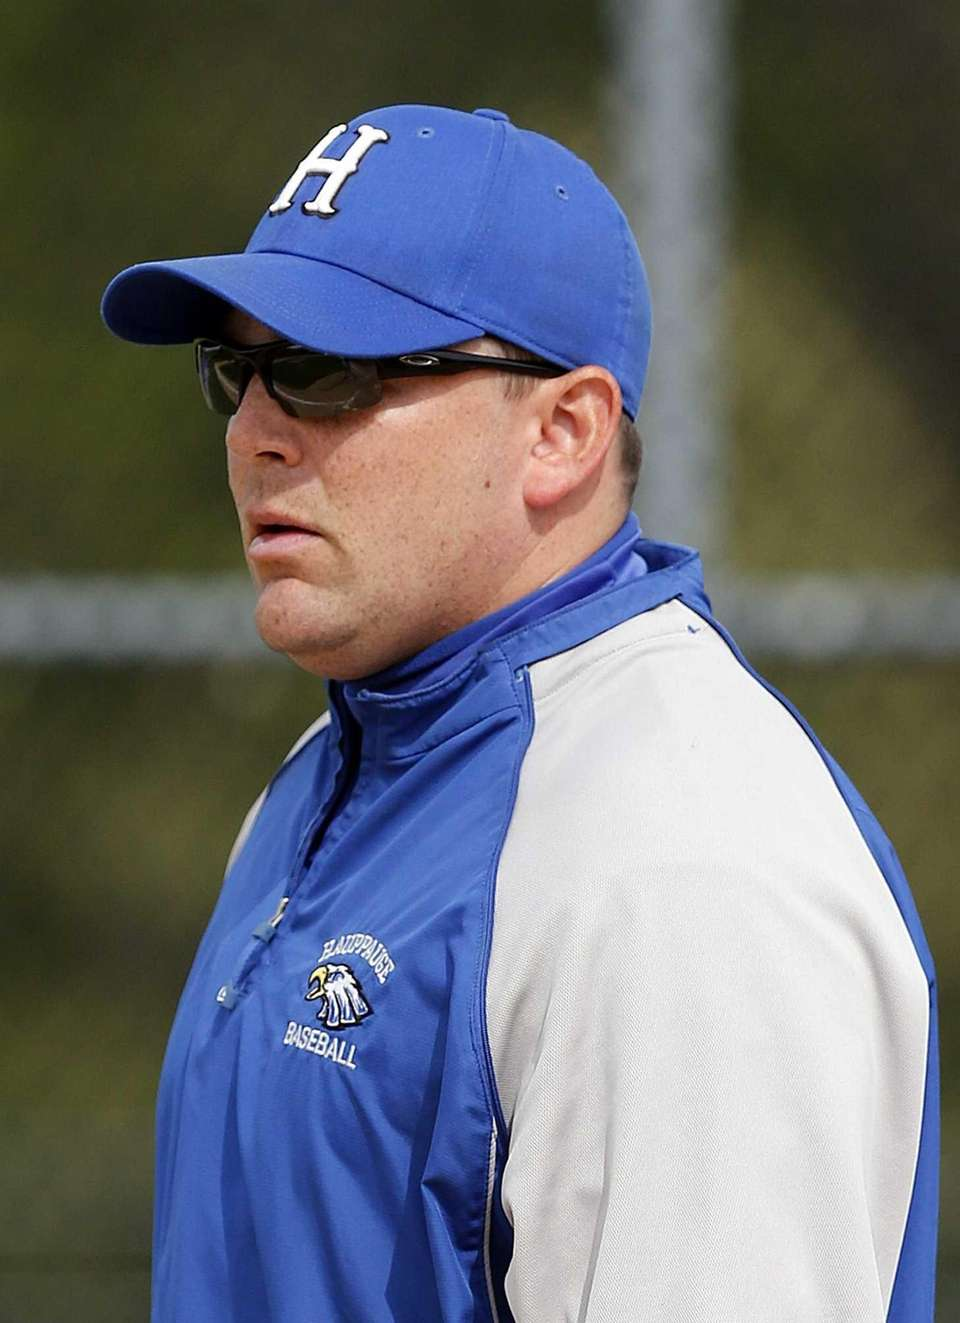 Hauppauge head varsity baseball coach Kevin Giachetti watches